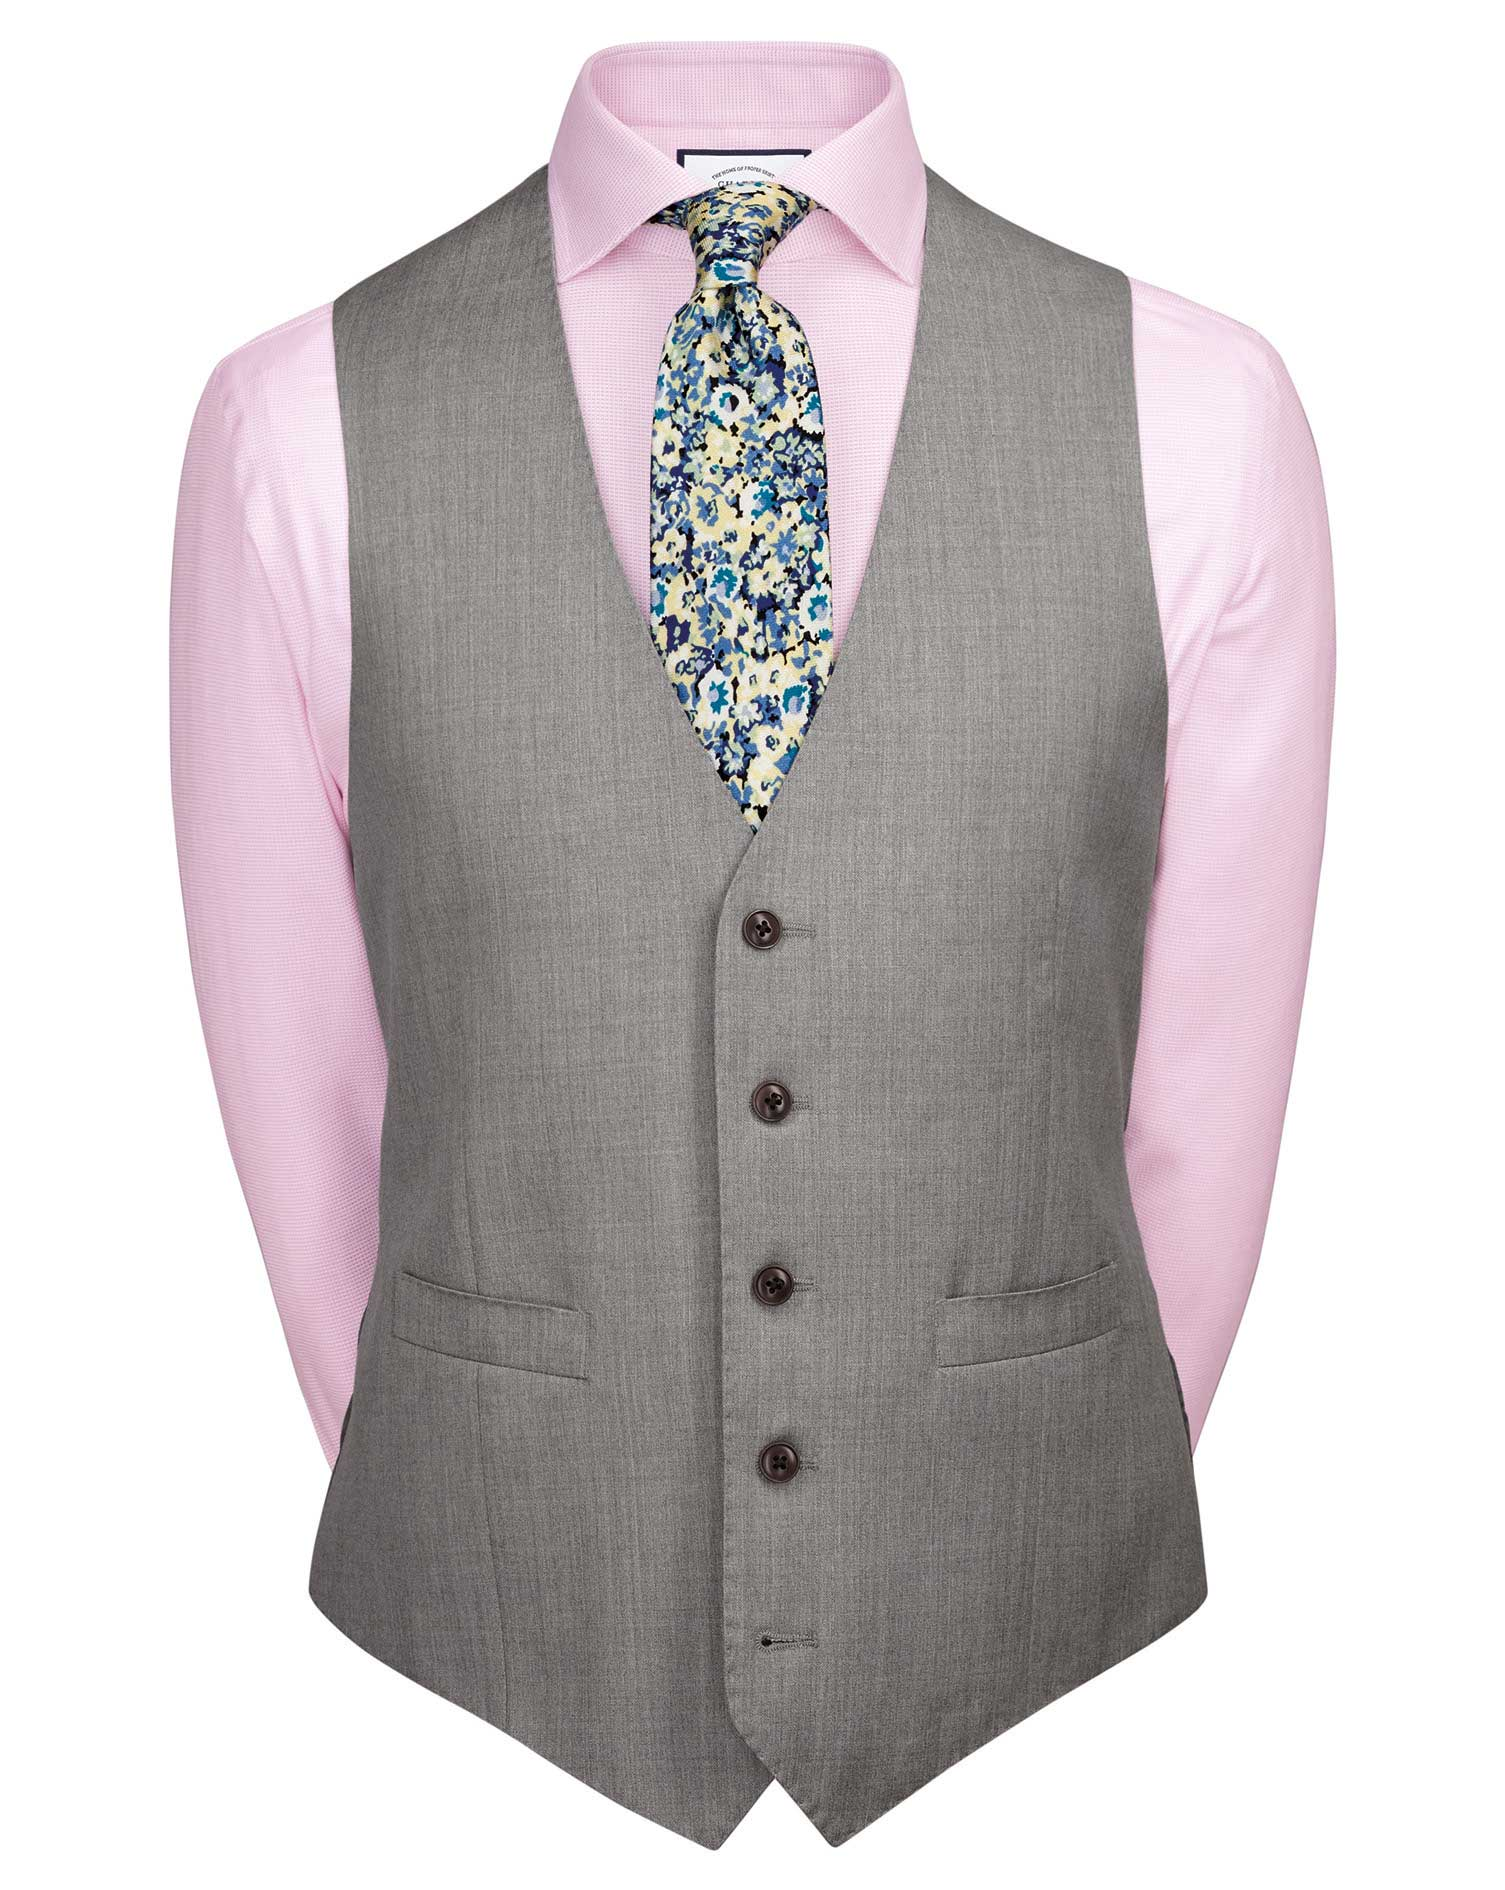 Silver adjustable fit Italian suit vests